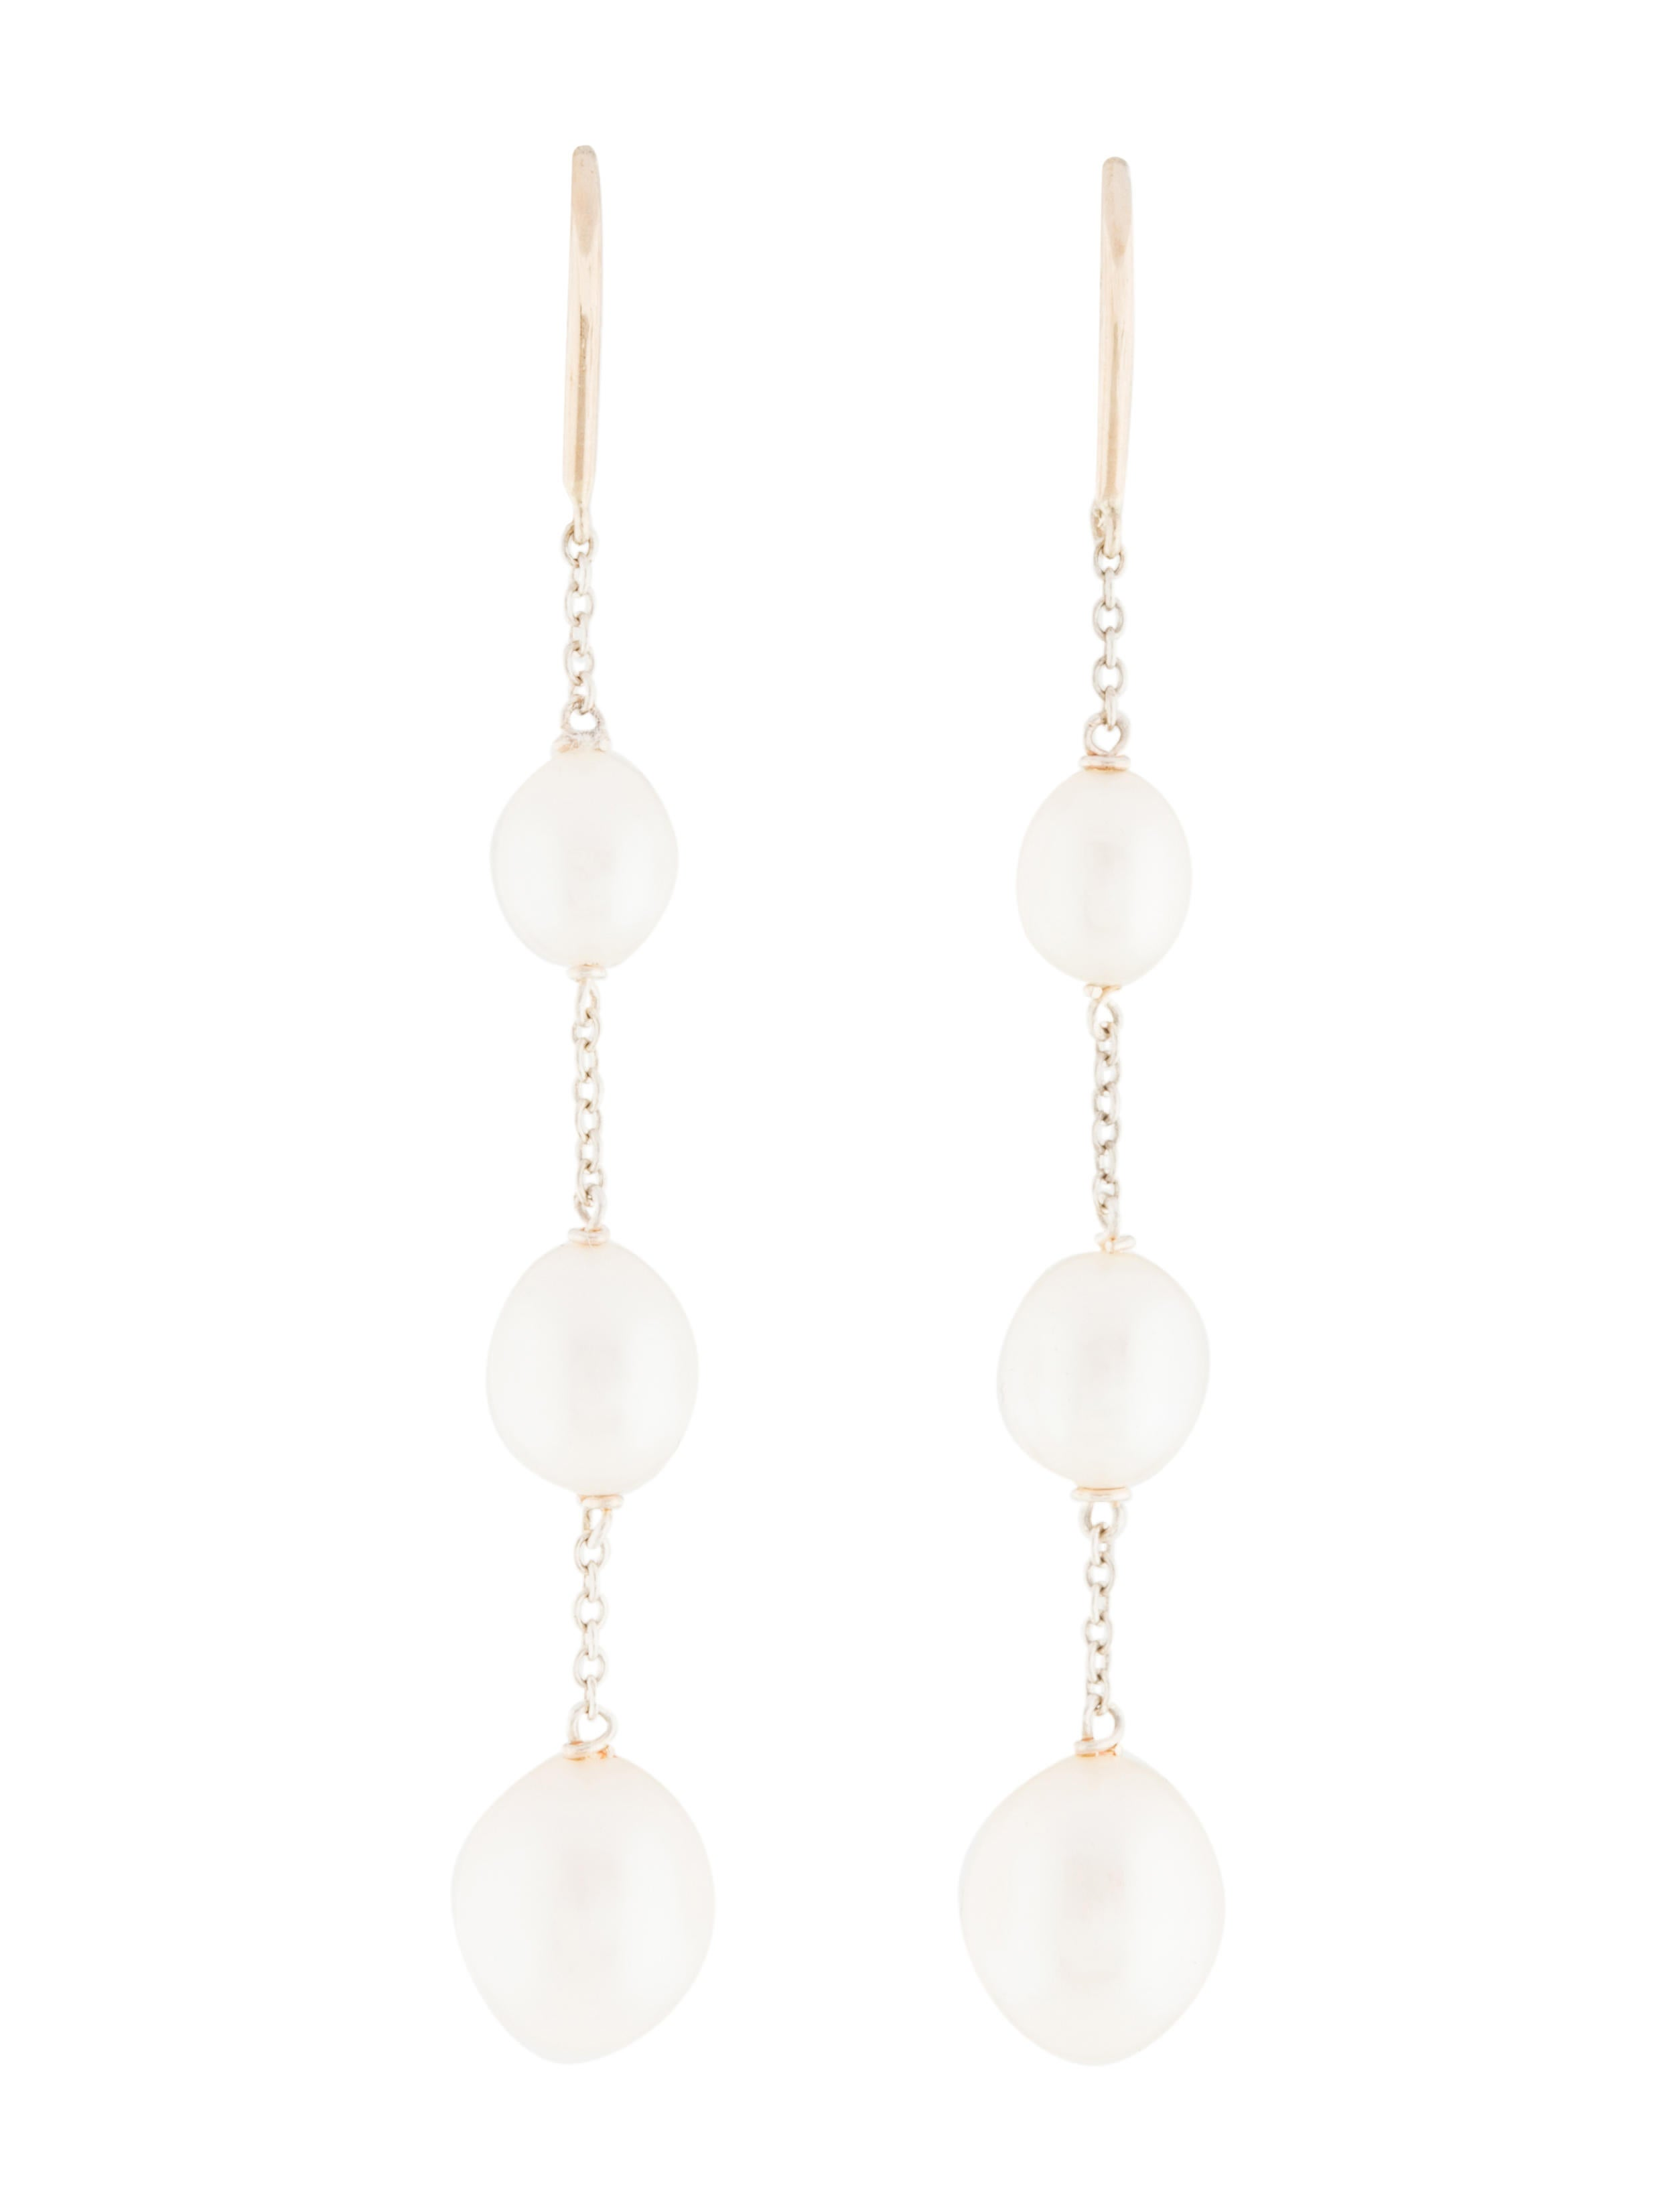 db124469c Tiffany & Co. Pearls by the Yard™ Chain Earrings - Earrings - TIF66506    The RealReal